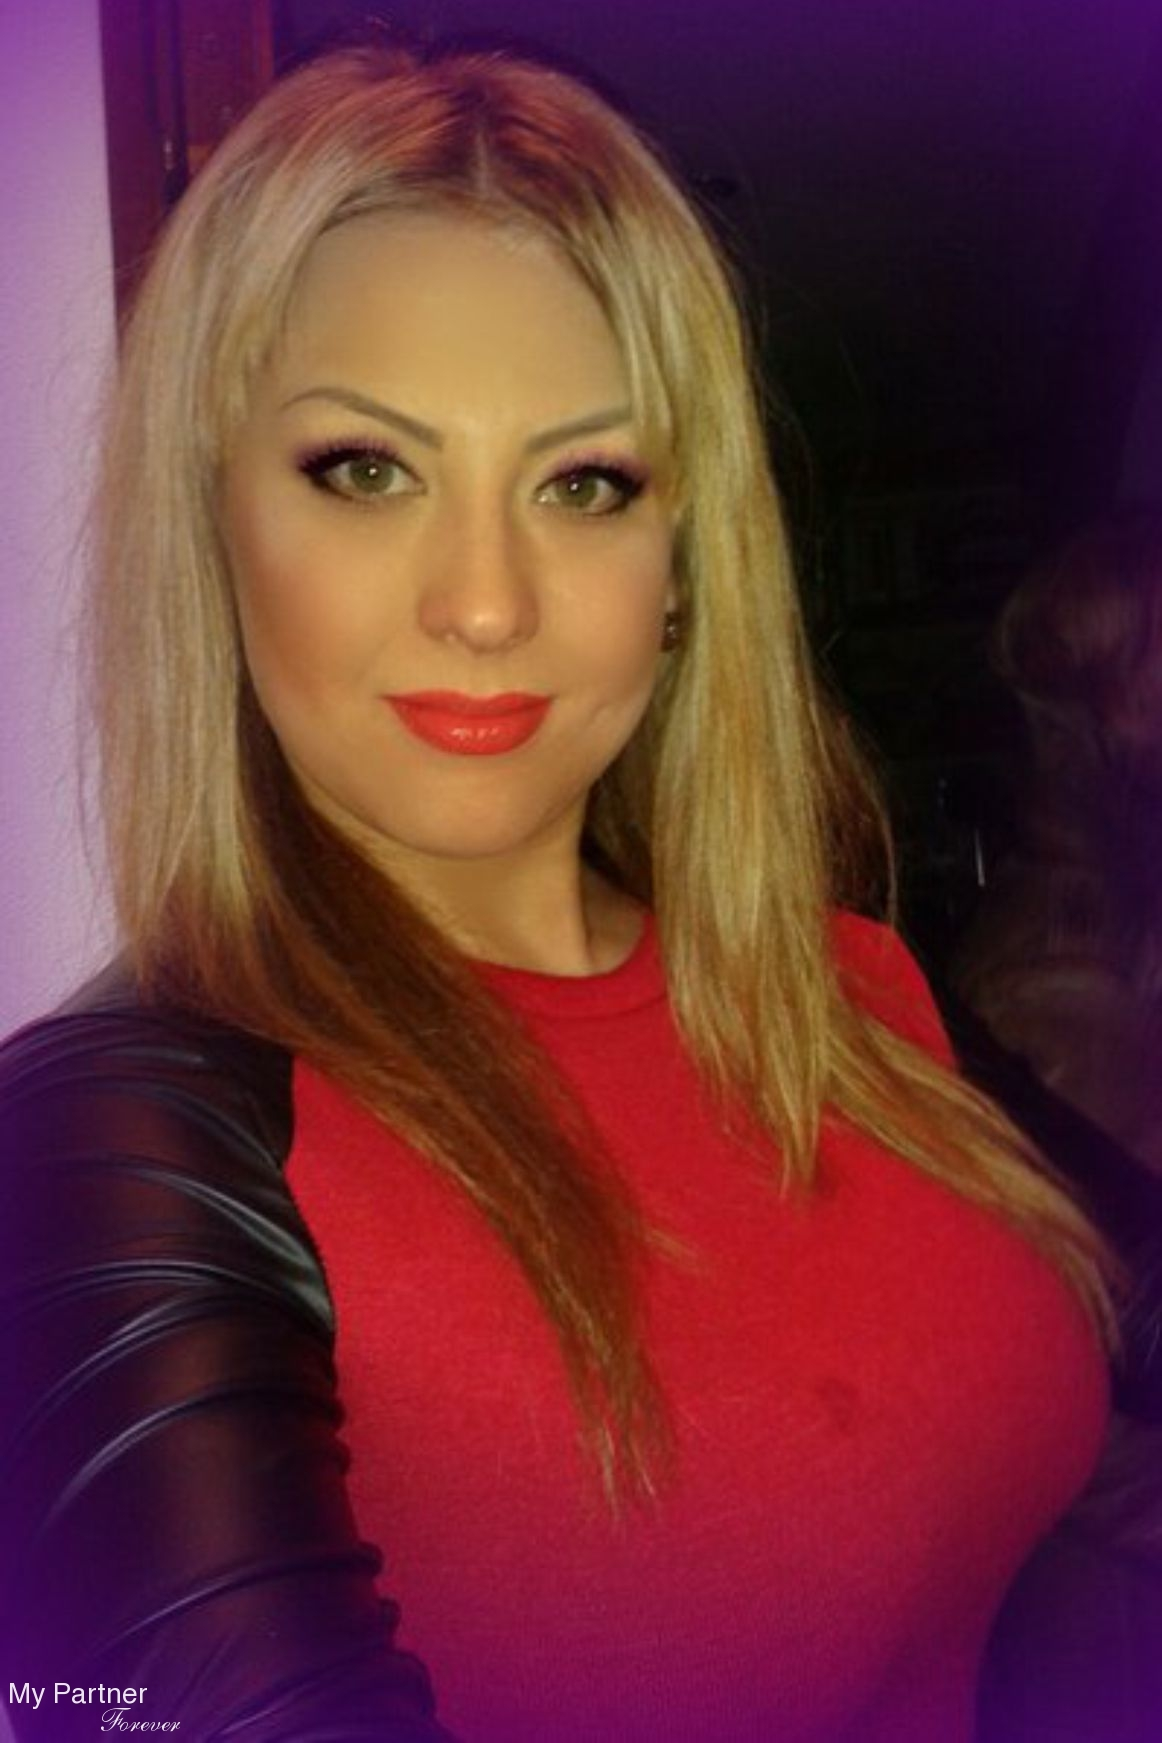 single lesbian women in dellrose Hook up with affectionate persons | casual dating pwdatingdcdnhardwarus   single lesbian women in council grove house single parent personals eliot.